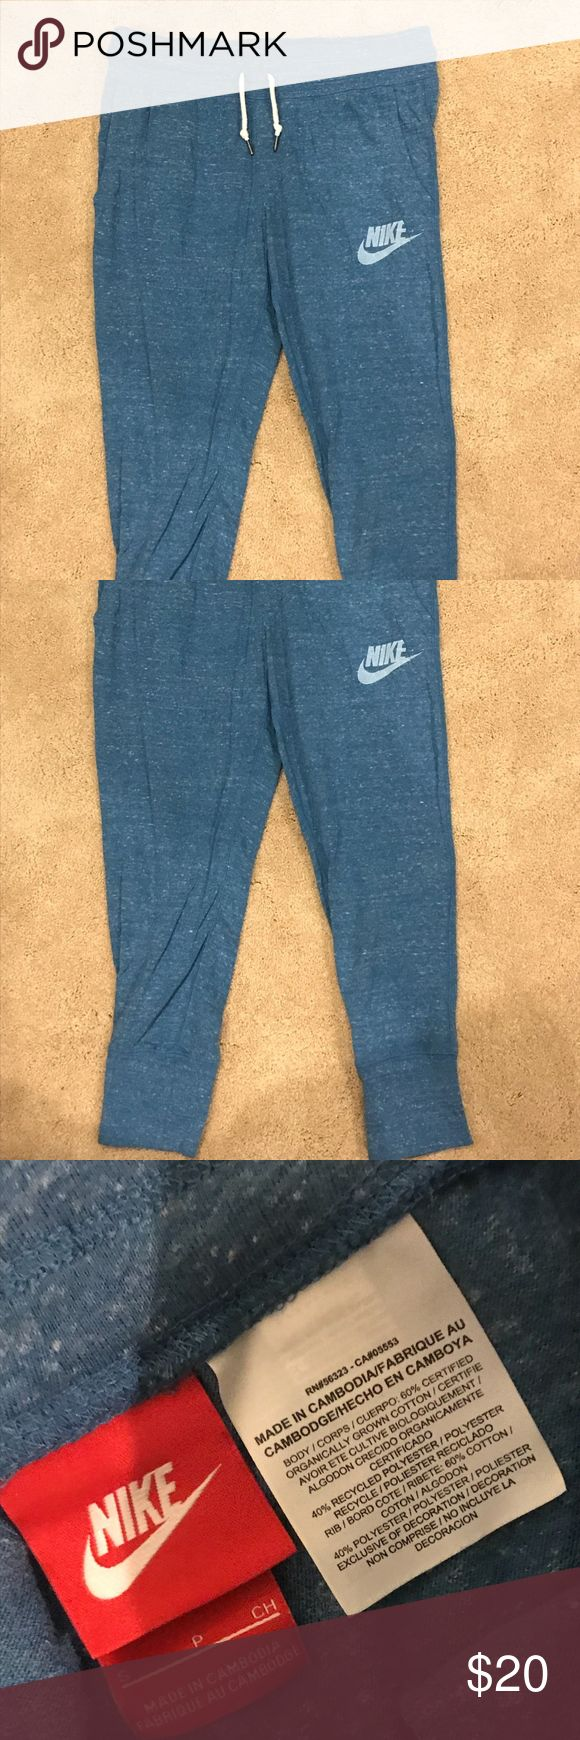 Blue Nike Vintage Crop Sweat Pants/Joggers The Nike Sportswear Vintage Women's Pants are made with super-soft, cotton-blend fabric for all-day comfort and lasting wear.  Awesome condition and amazingly comfortable. Nike Pants Track Pants & Joggers